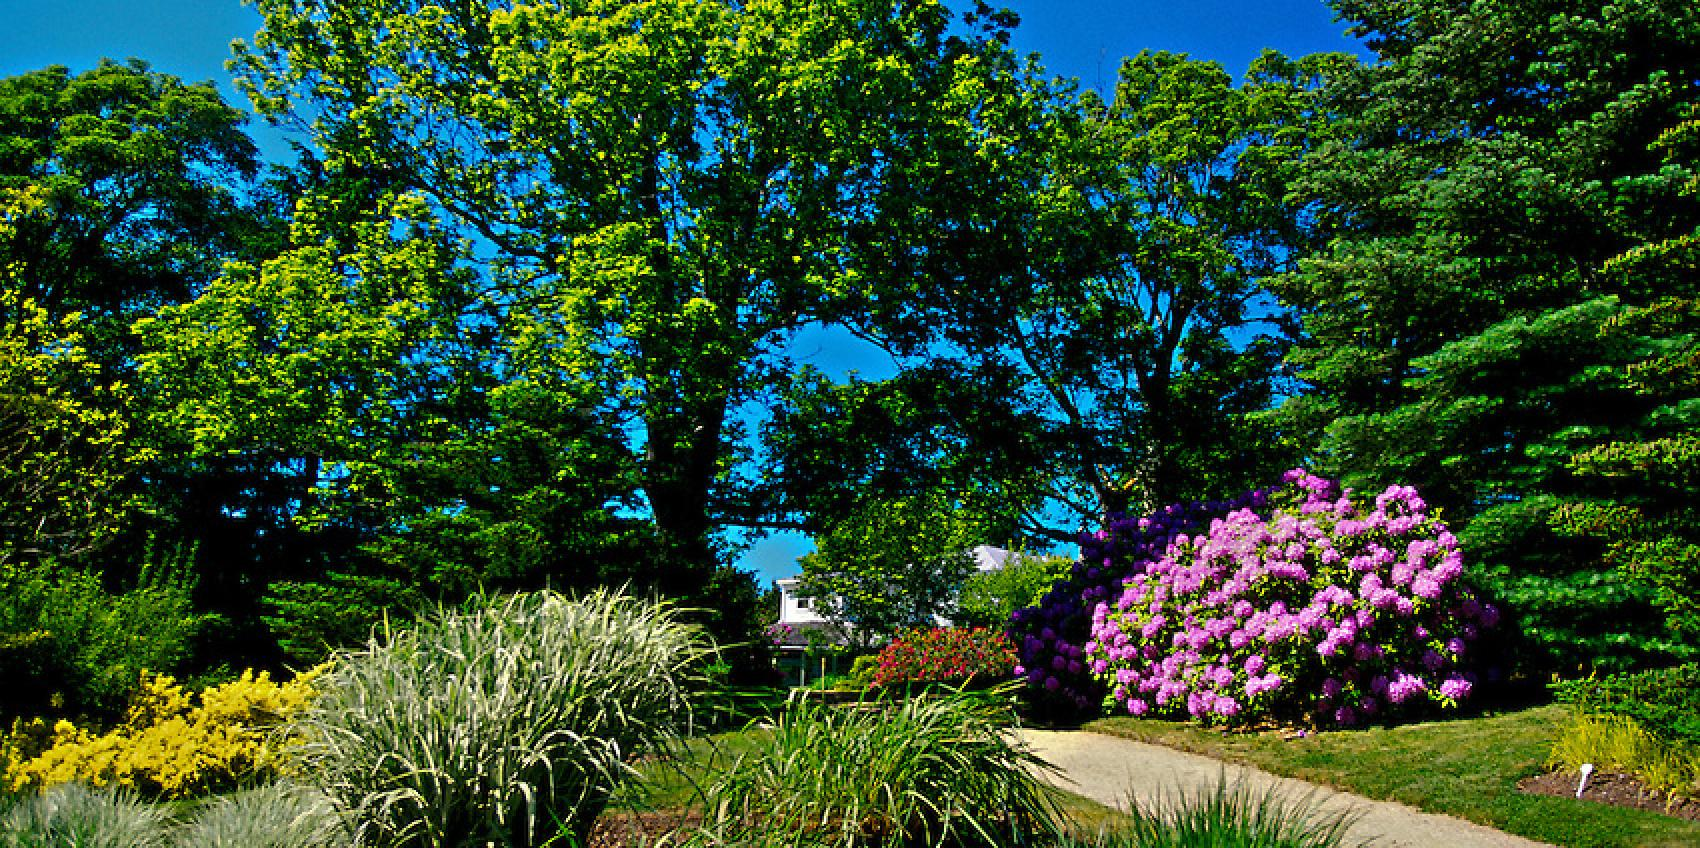 The Annapolis Royal Historic Gardens Is A 17 Acre Display Garden Located In  Historic Annapolis Royal, Nova Scotia. The Gardens Are Designed To  Interpret ...